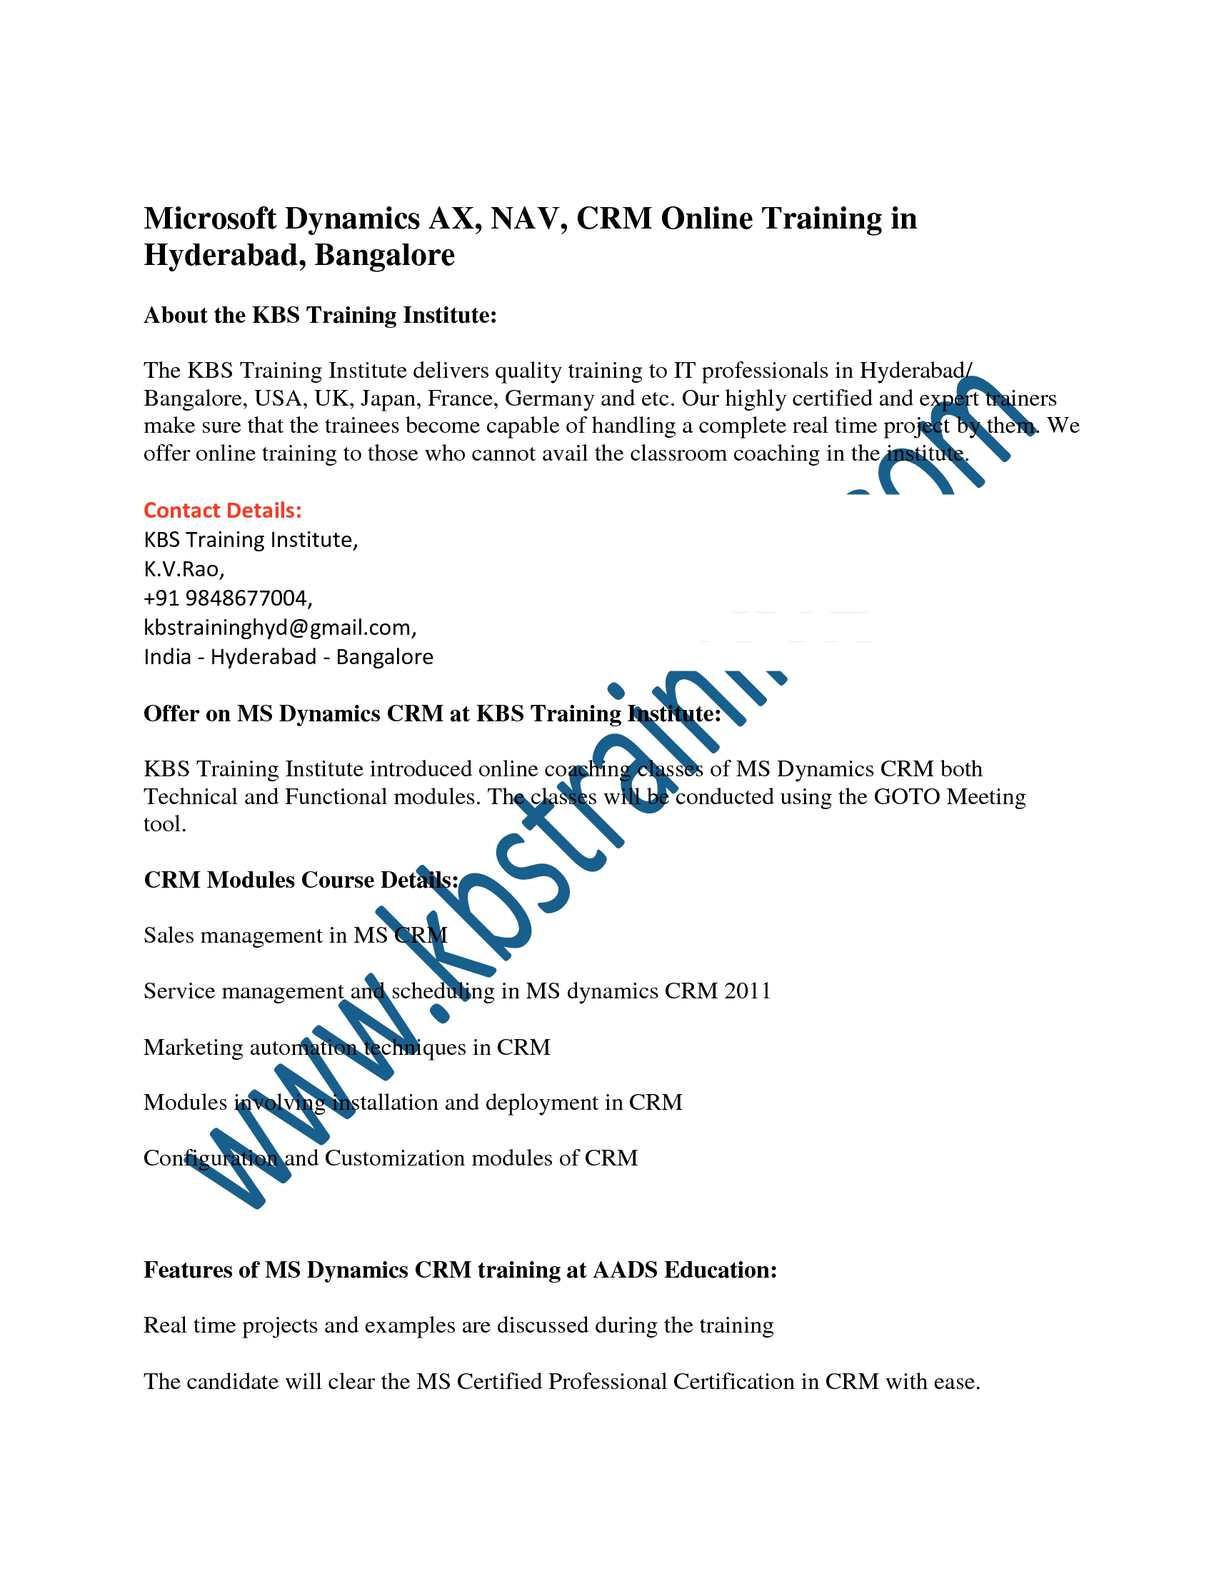 Calamo Microsoft Dynamics Axcrm And Nav Online Training In